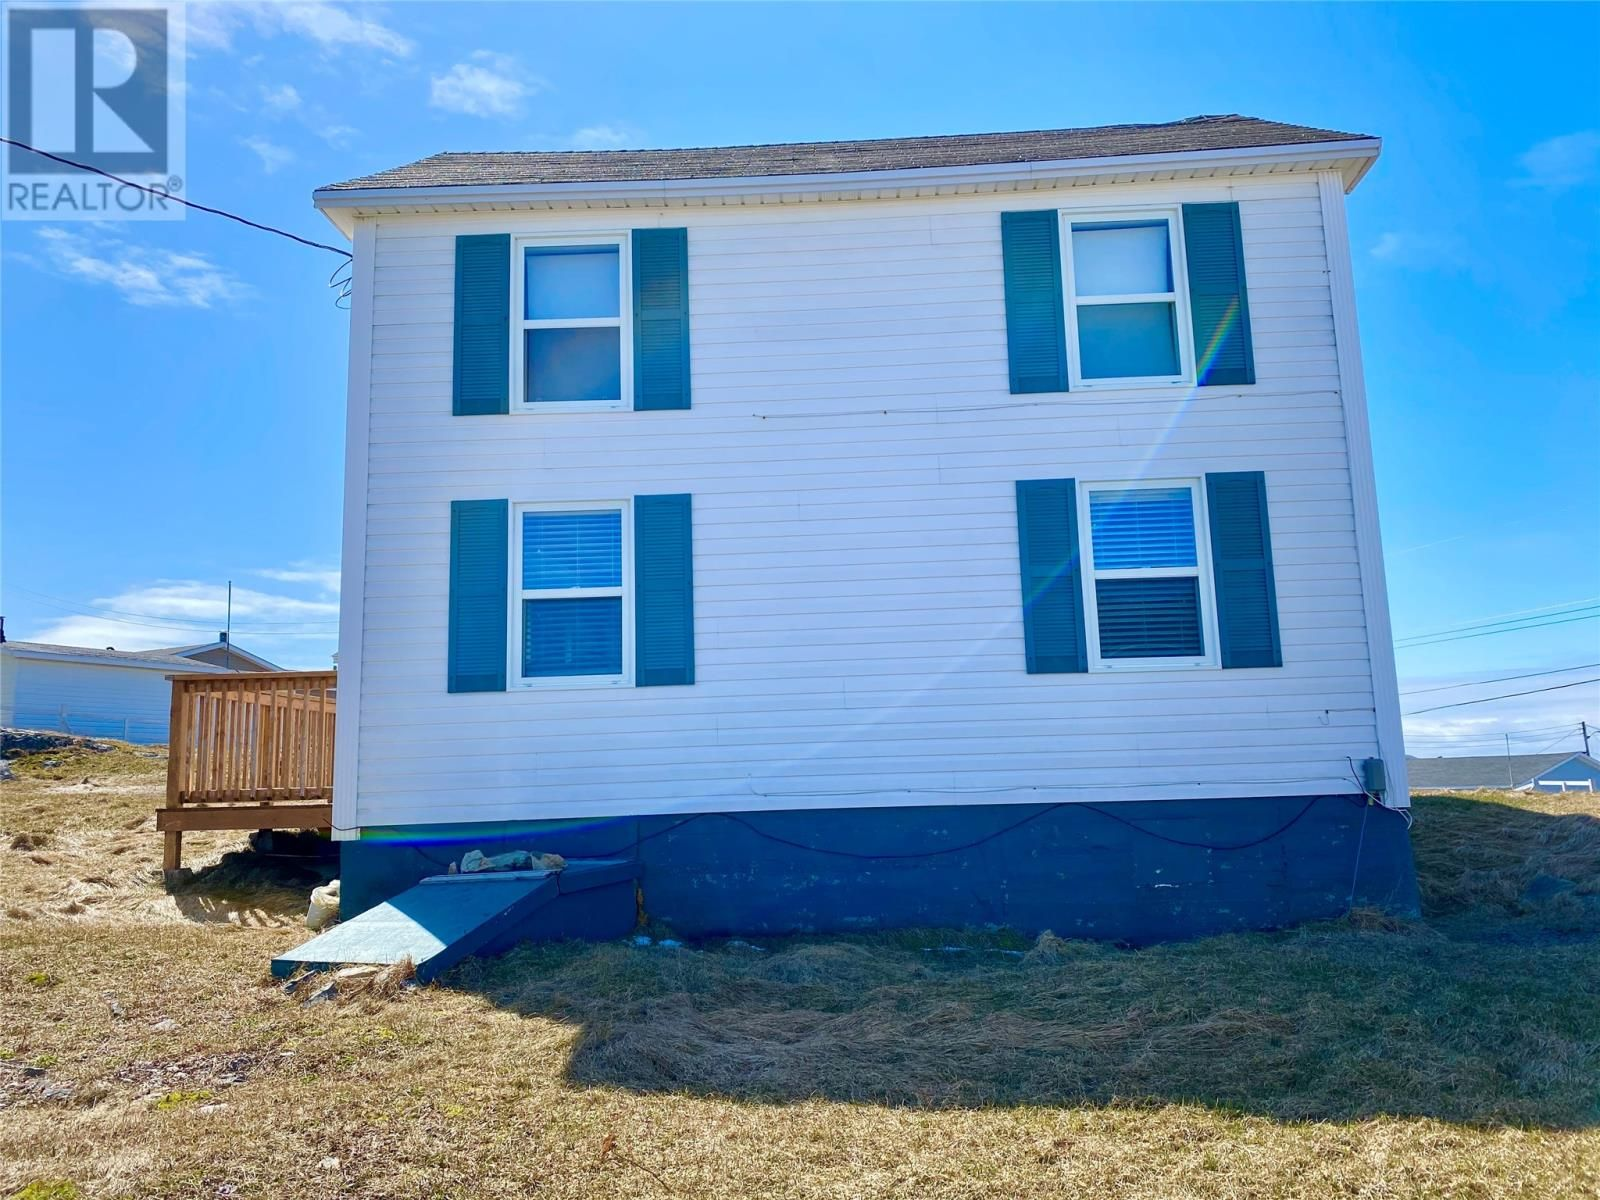 Main Photo: 1335 Main Street in Fogo: House for sale : MLS®# 1229774